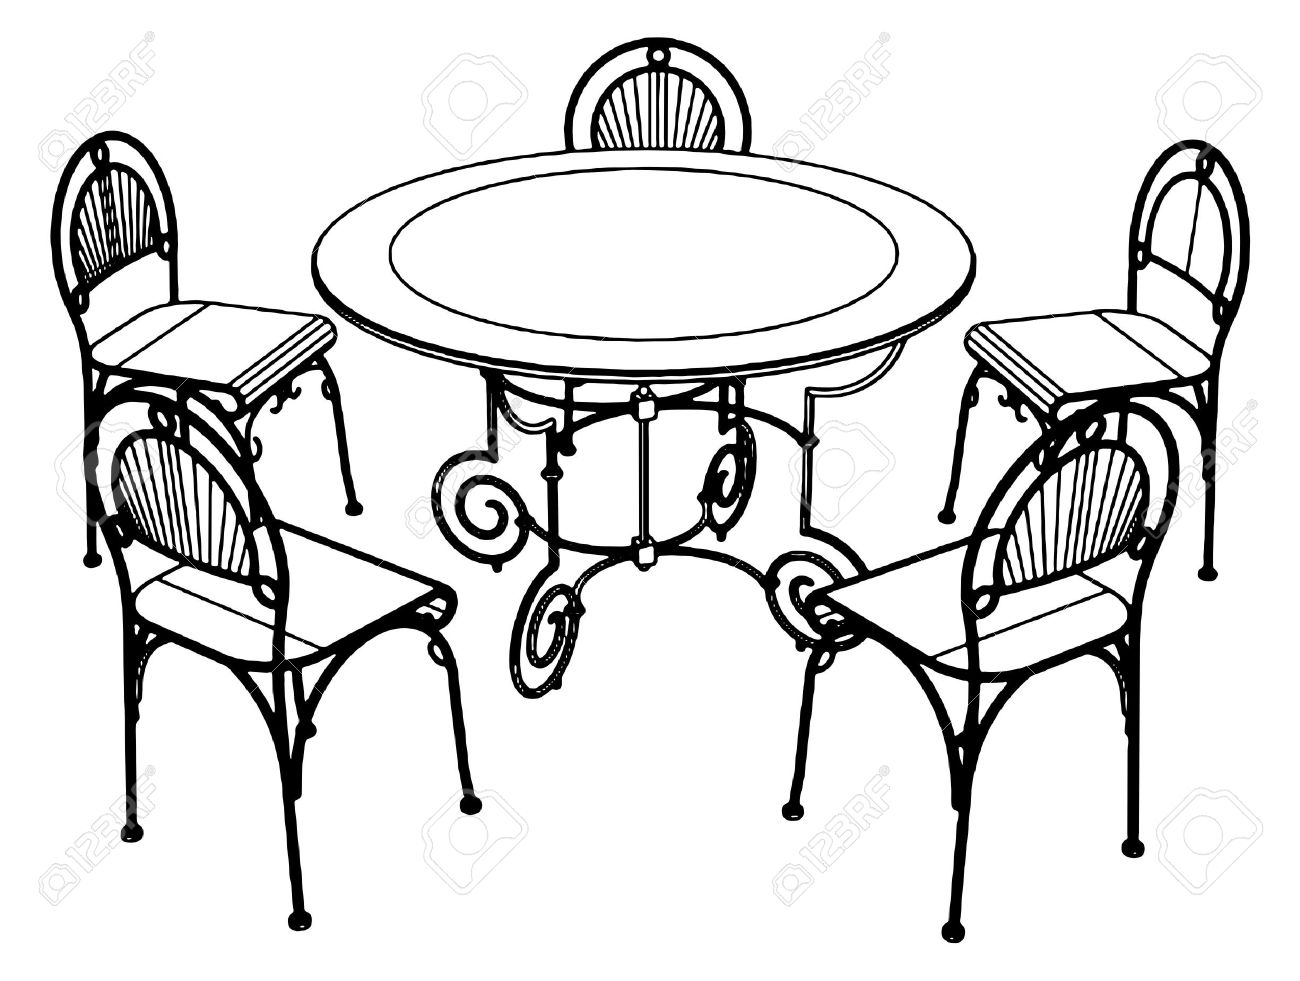 Furniture Clipart Black And White | Free download on ...